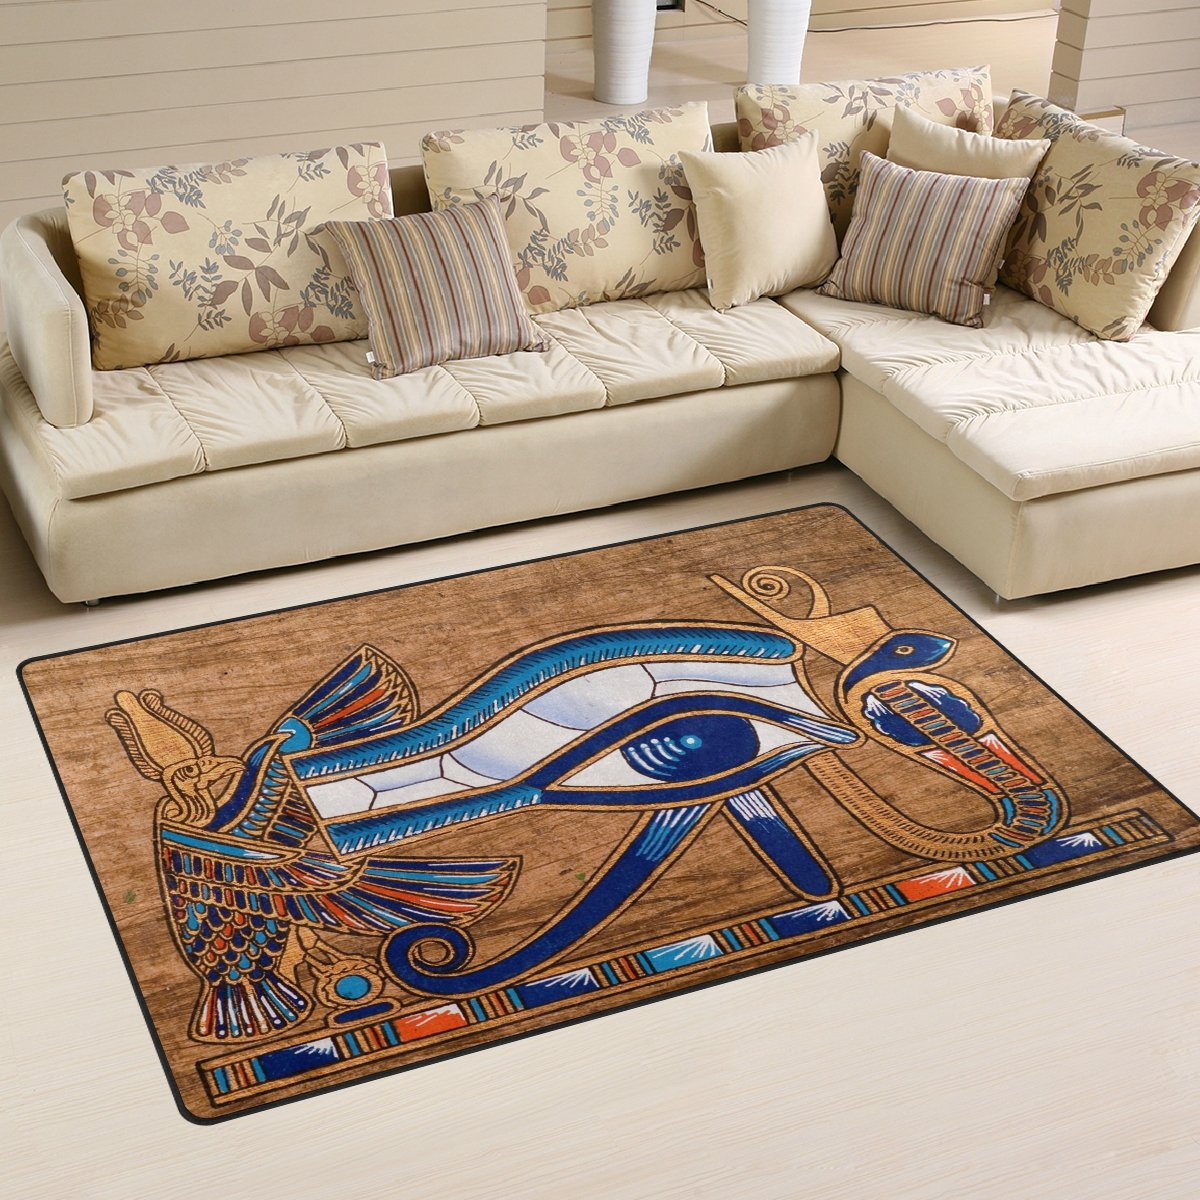 Naanle Egypt Area Rug 3 x5 , Egyptian Horus Eye Polyester Area Rug Mat for Living Dining Dorm Room Bedroom Home Decorative